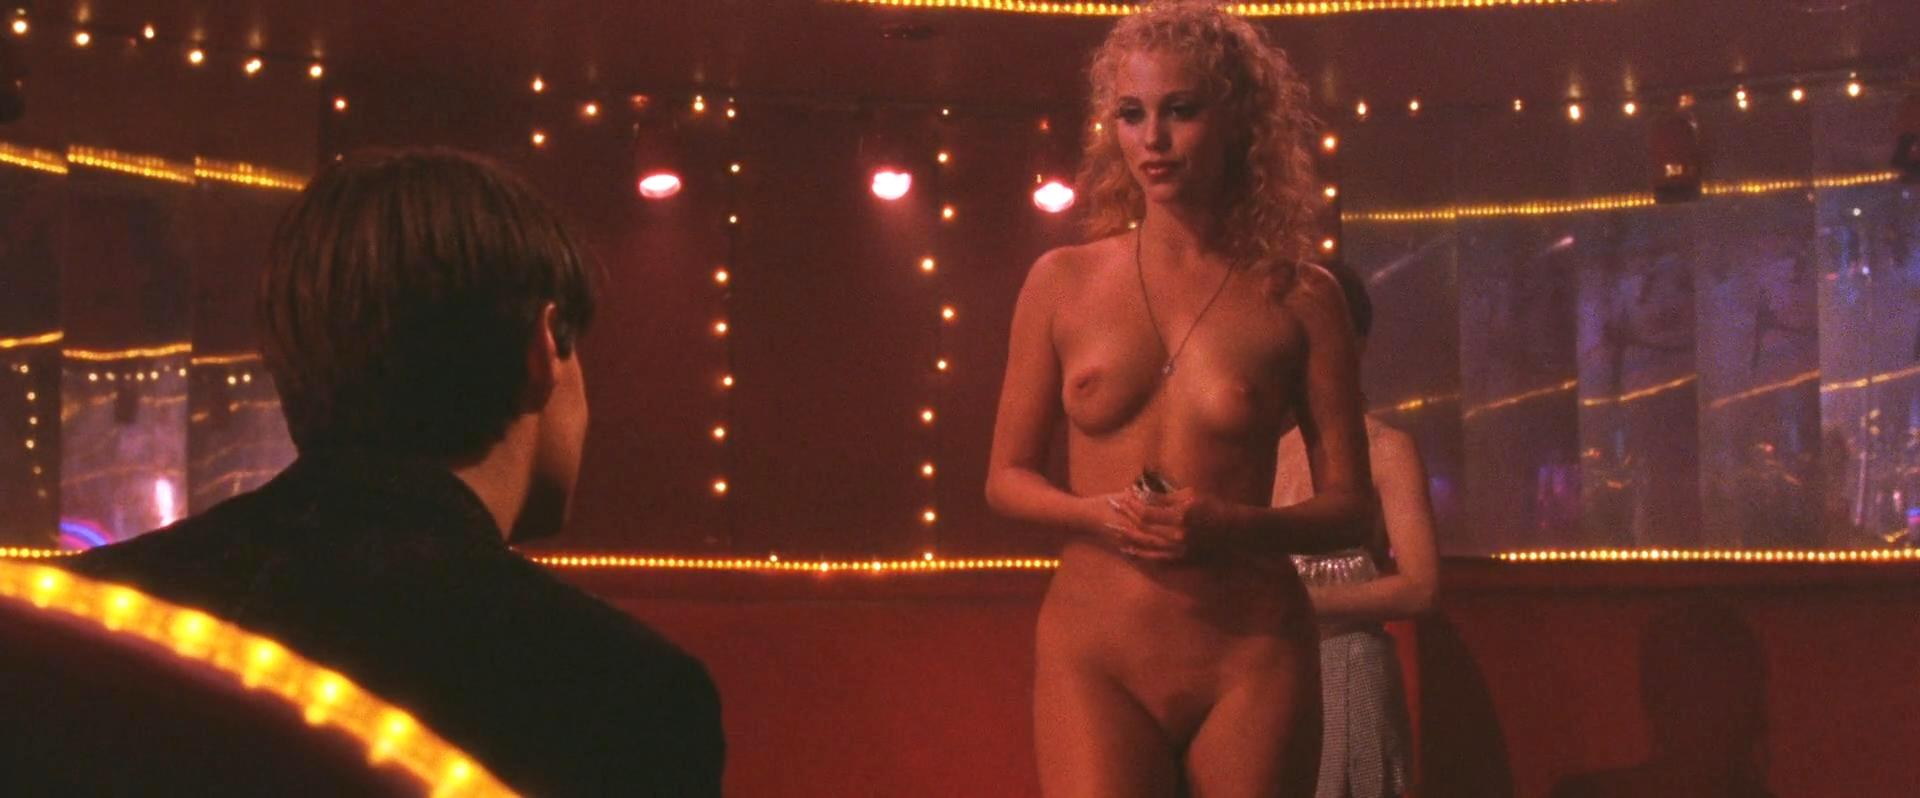 Where Showgirls elizabeth berkley xxx photos have